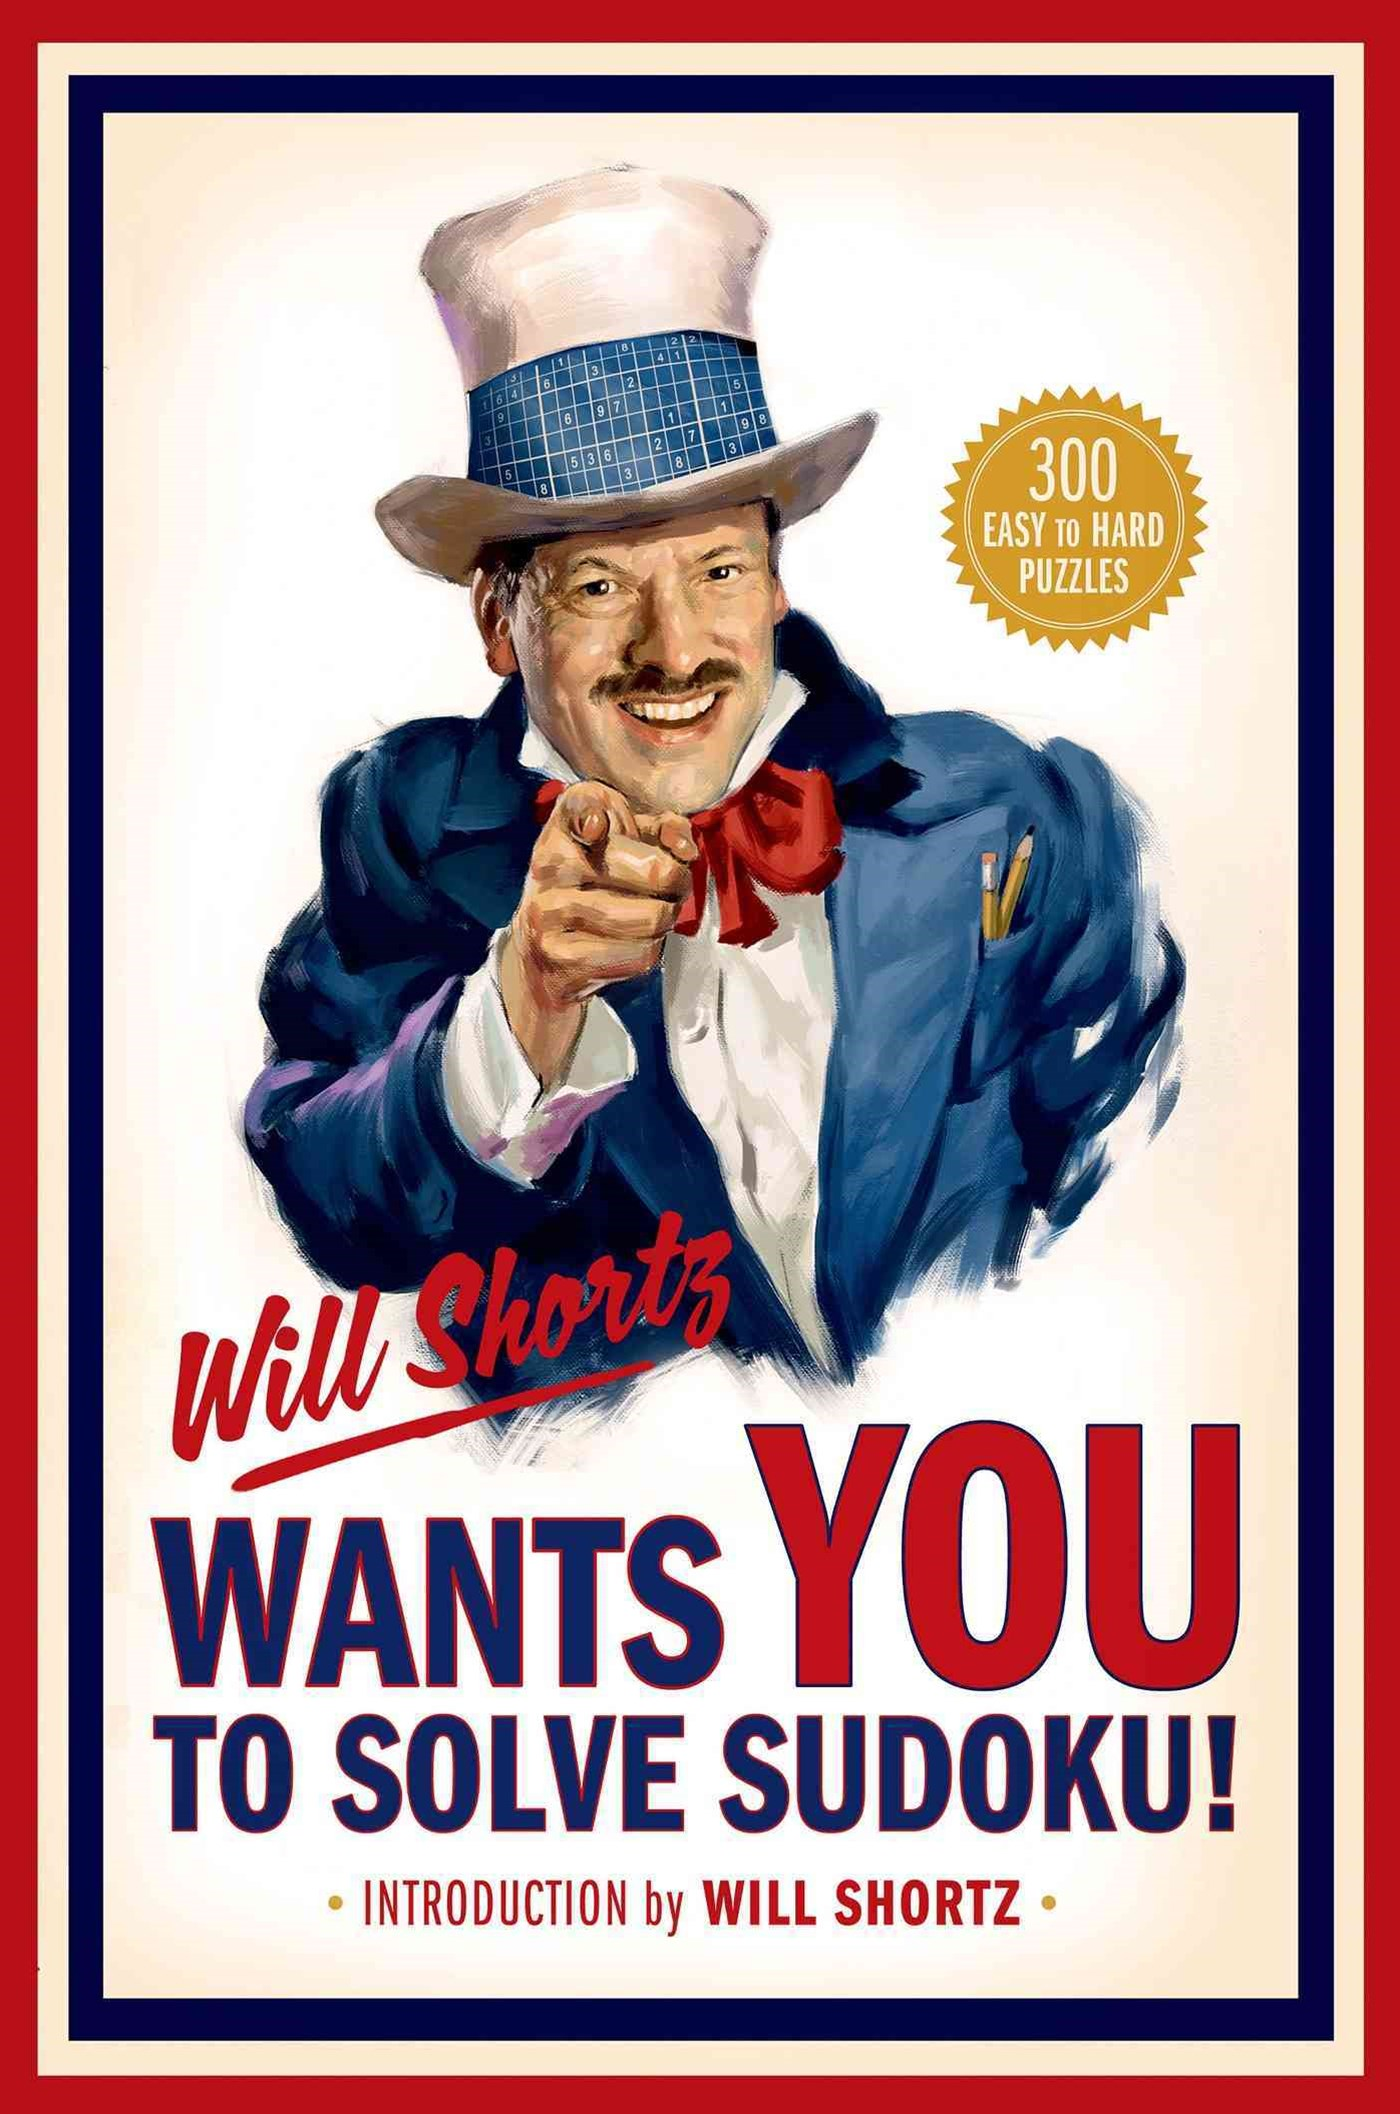 Will Shortz Wants You to Solve Sudoku!